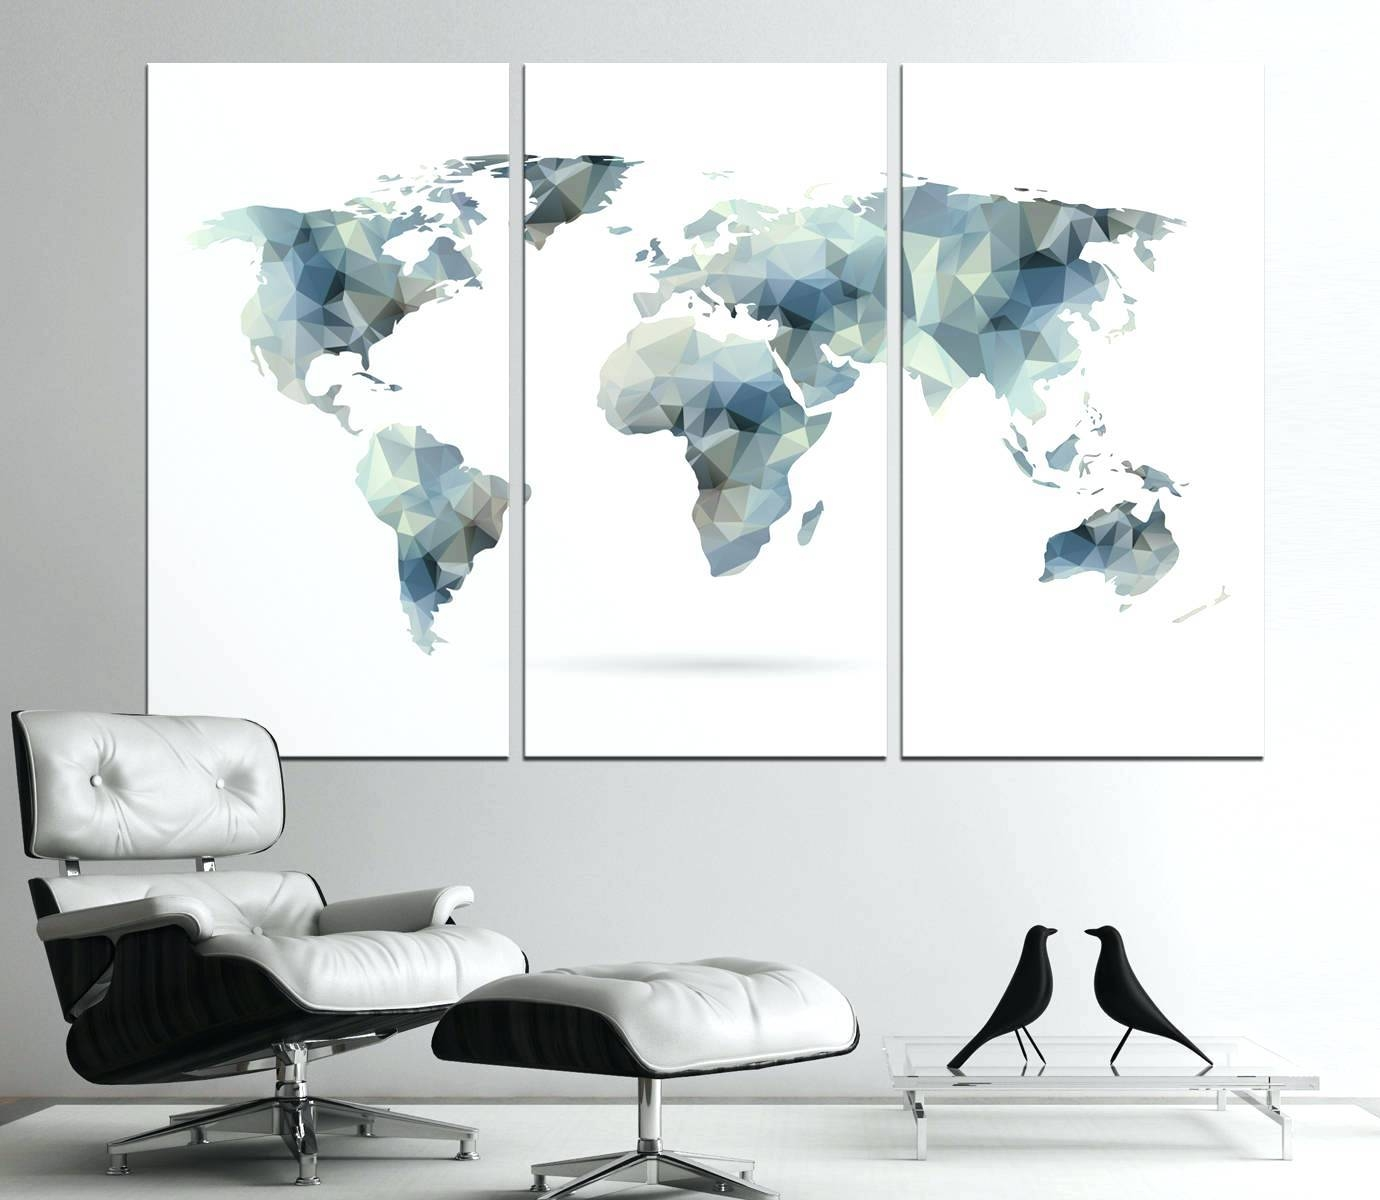 Wall Arts ~ Wall Art For Home Office Large Geometric World Map Inside Best And Newest Large World Map Wall Art (View 17 of 20)